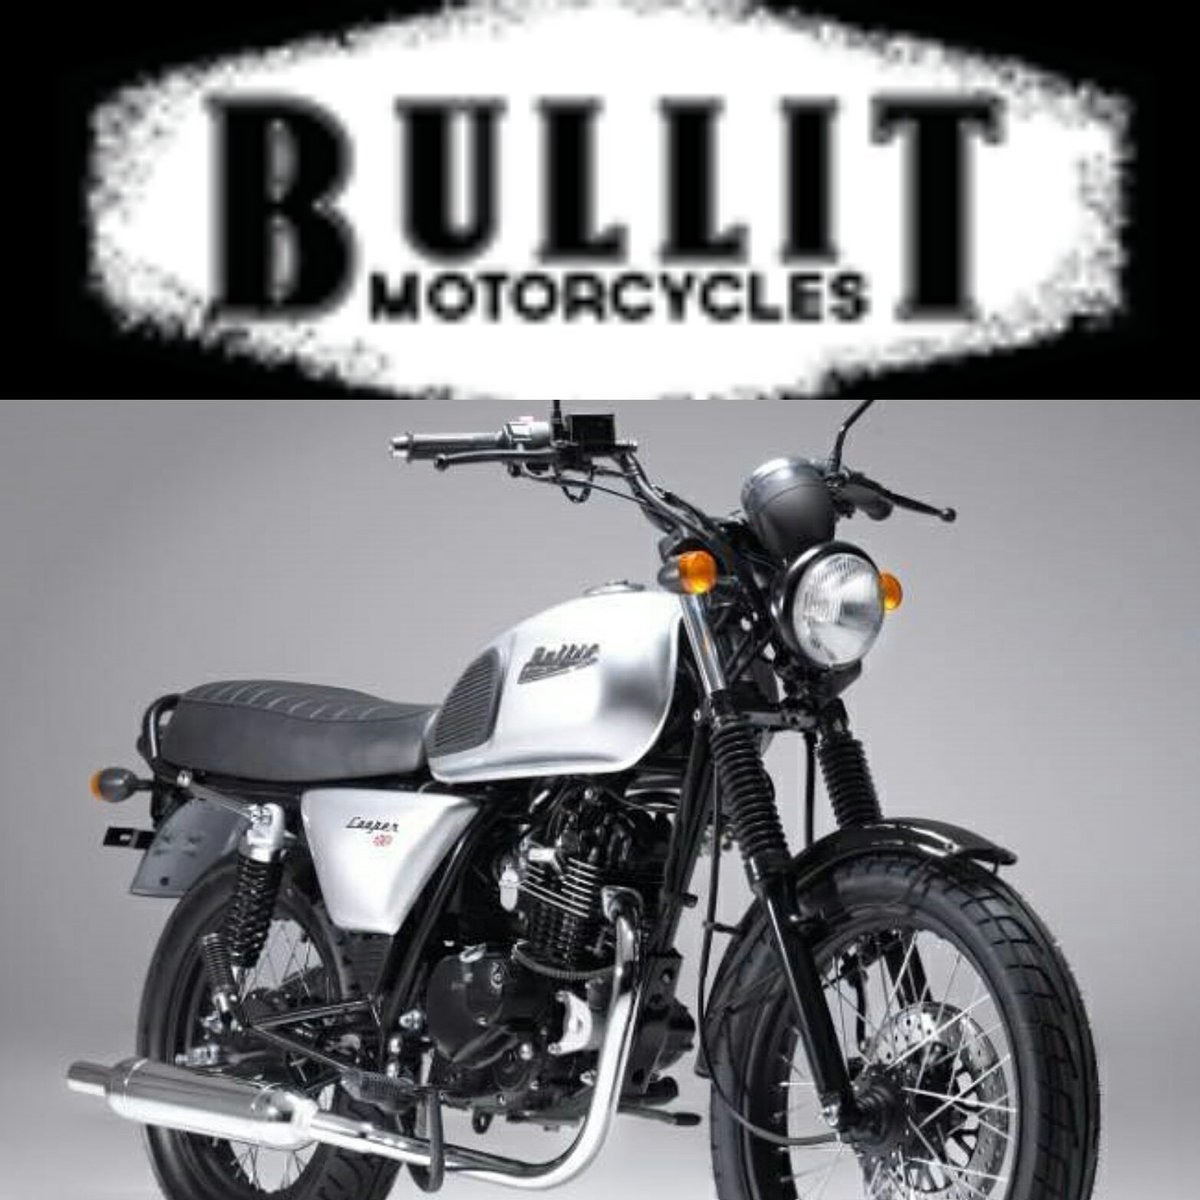 motoplage on twitter la bullit hunt s 125 cc la moto classique vintage. Black Bedroom Furniture Sets. Home Design Ideas